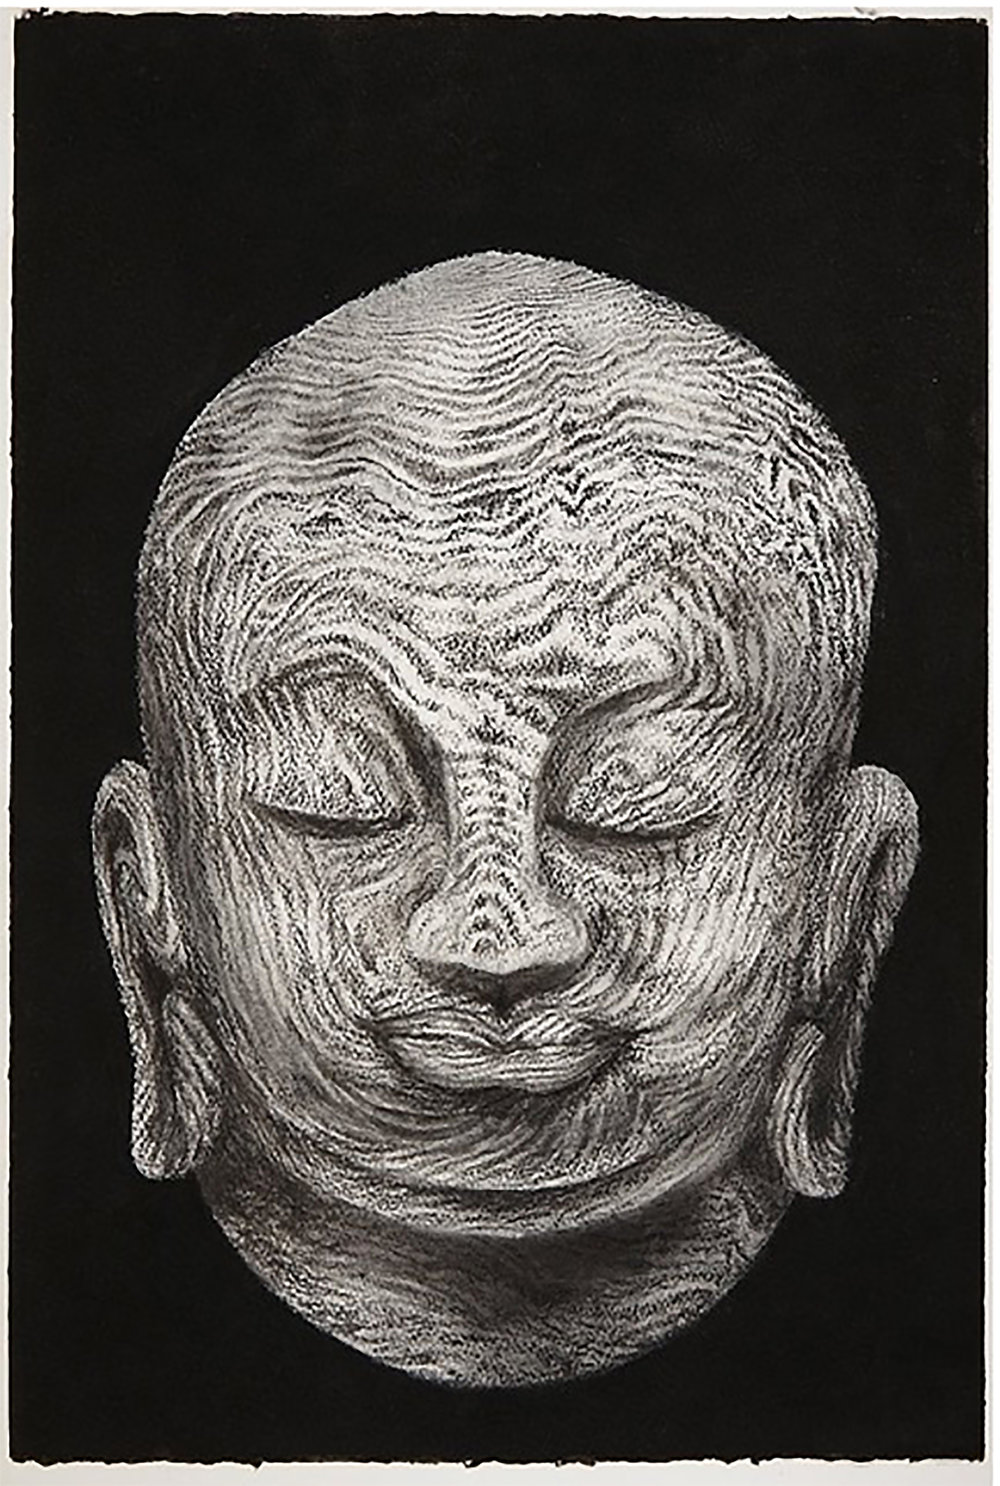 Buddha head 2, 2015, 57x38cm, charcoal on paper